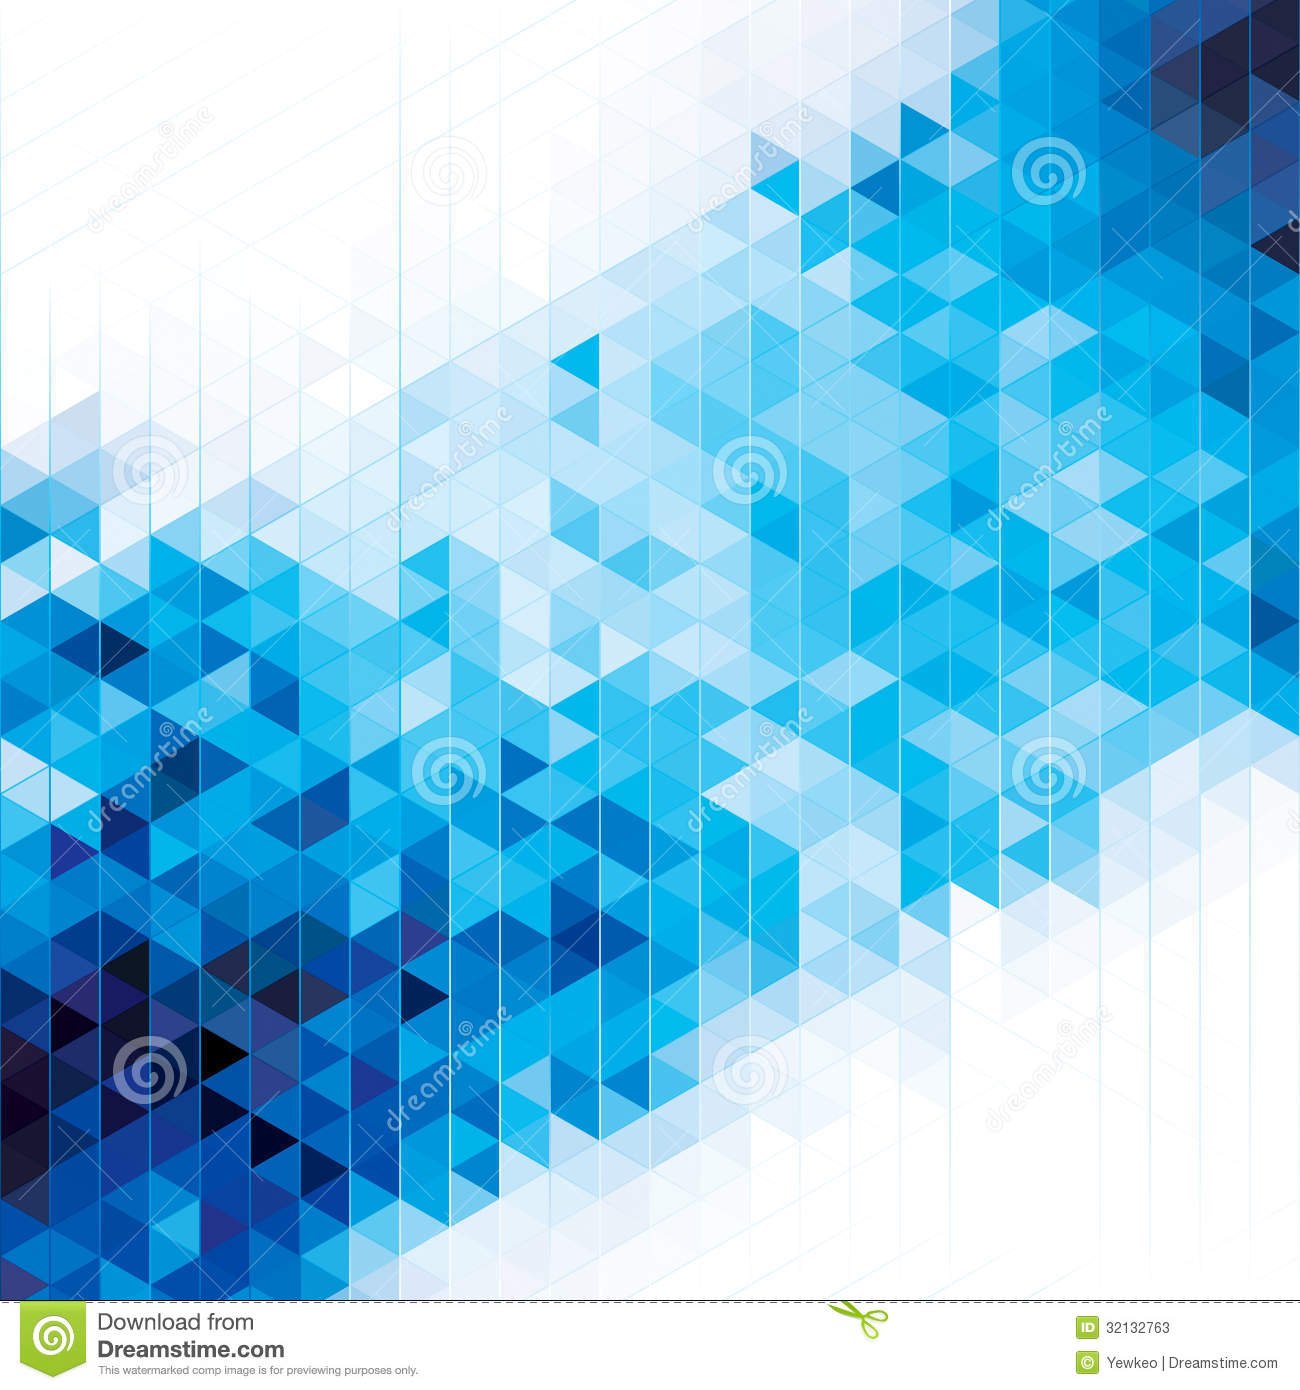 abstract geometric backgrounds modern blue background 32132763jpg 1300x1390